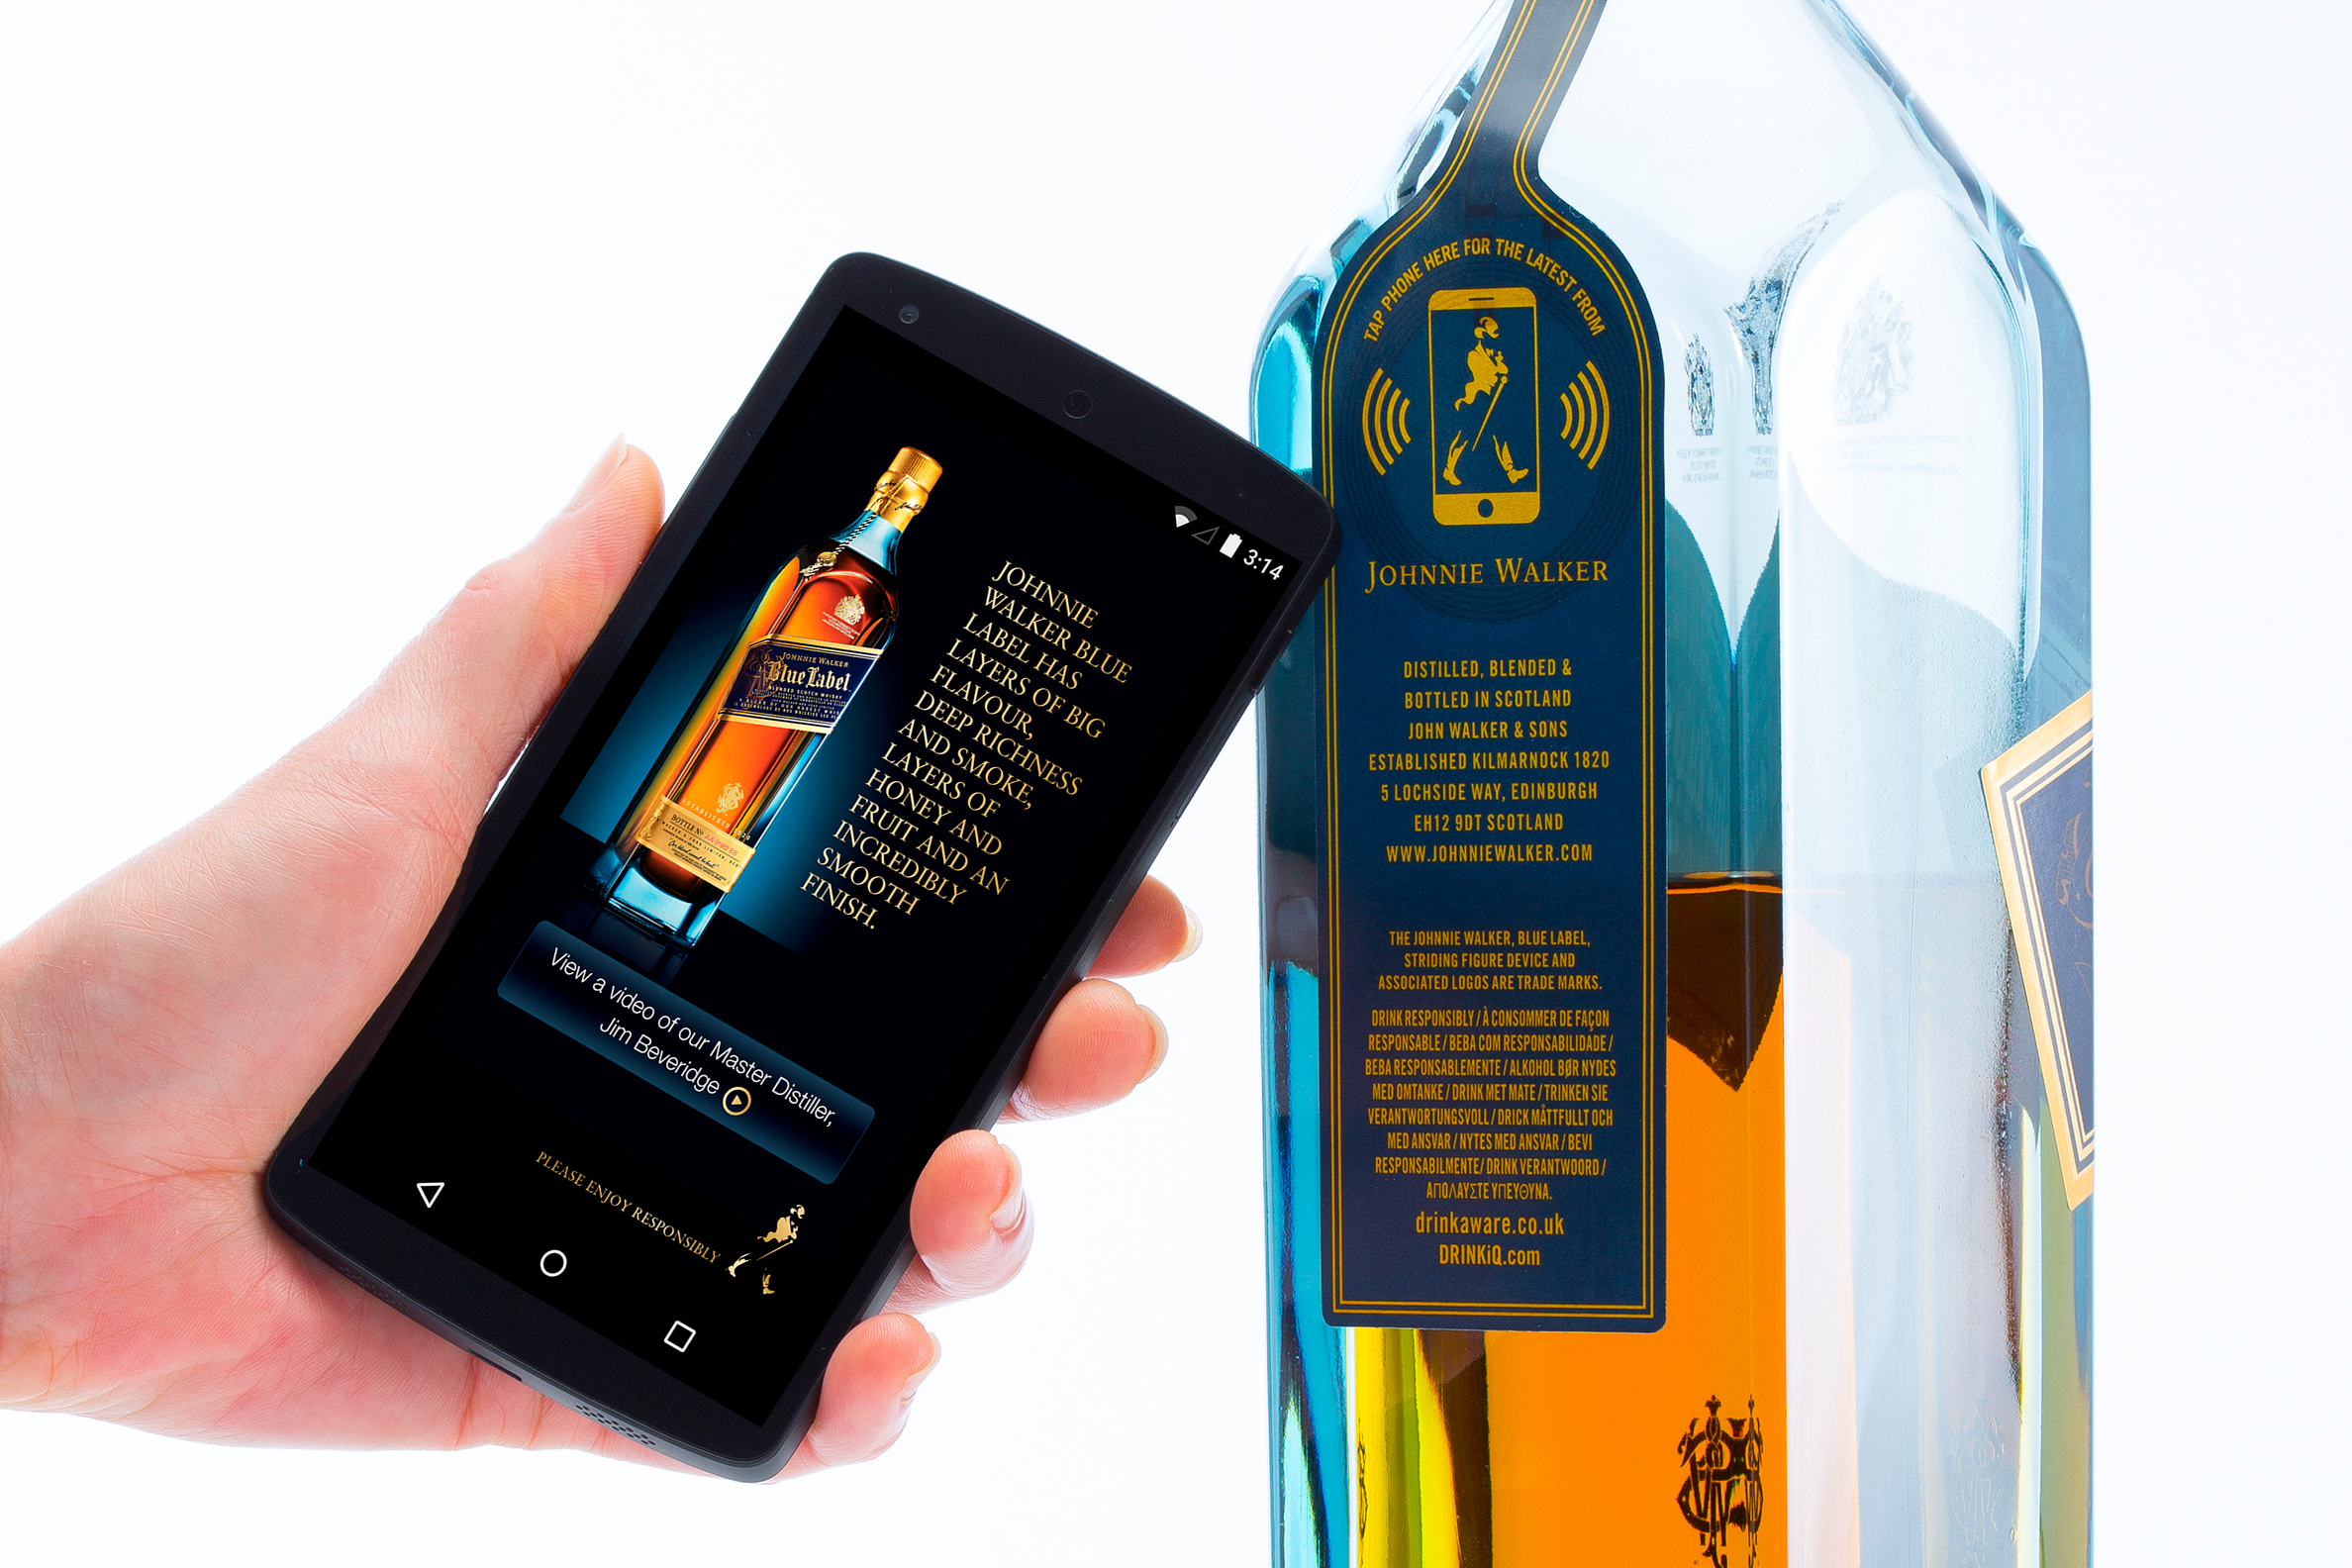 Johnnie Walker Blue Label bottle with Thinfilm's OpenSense NFC tag